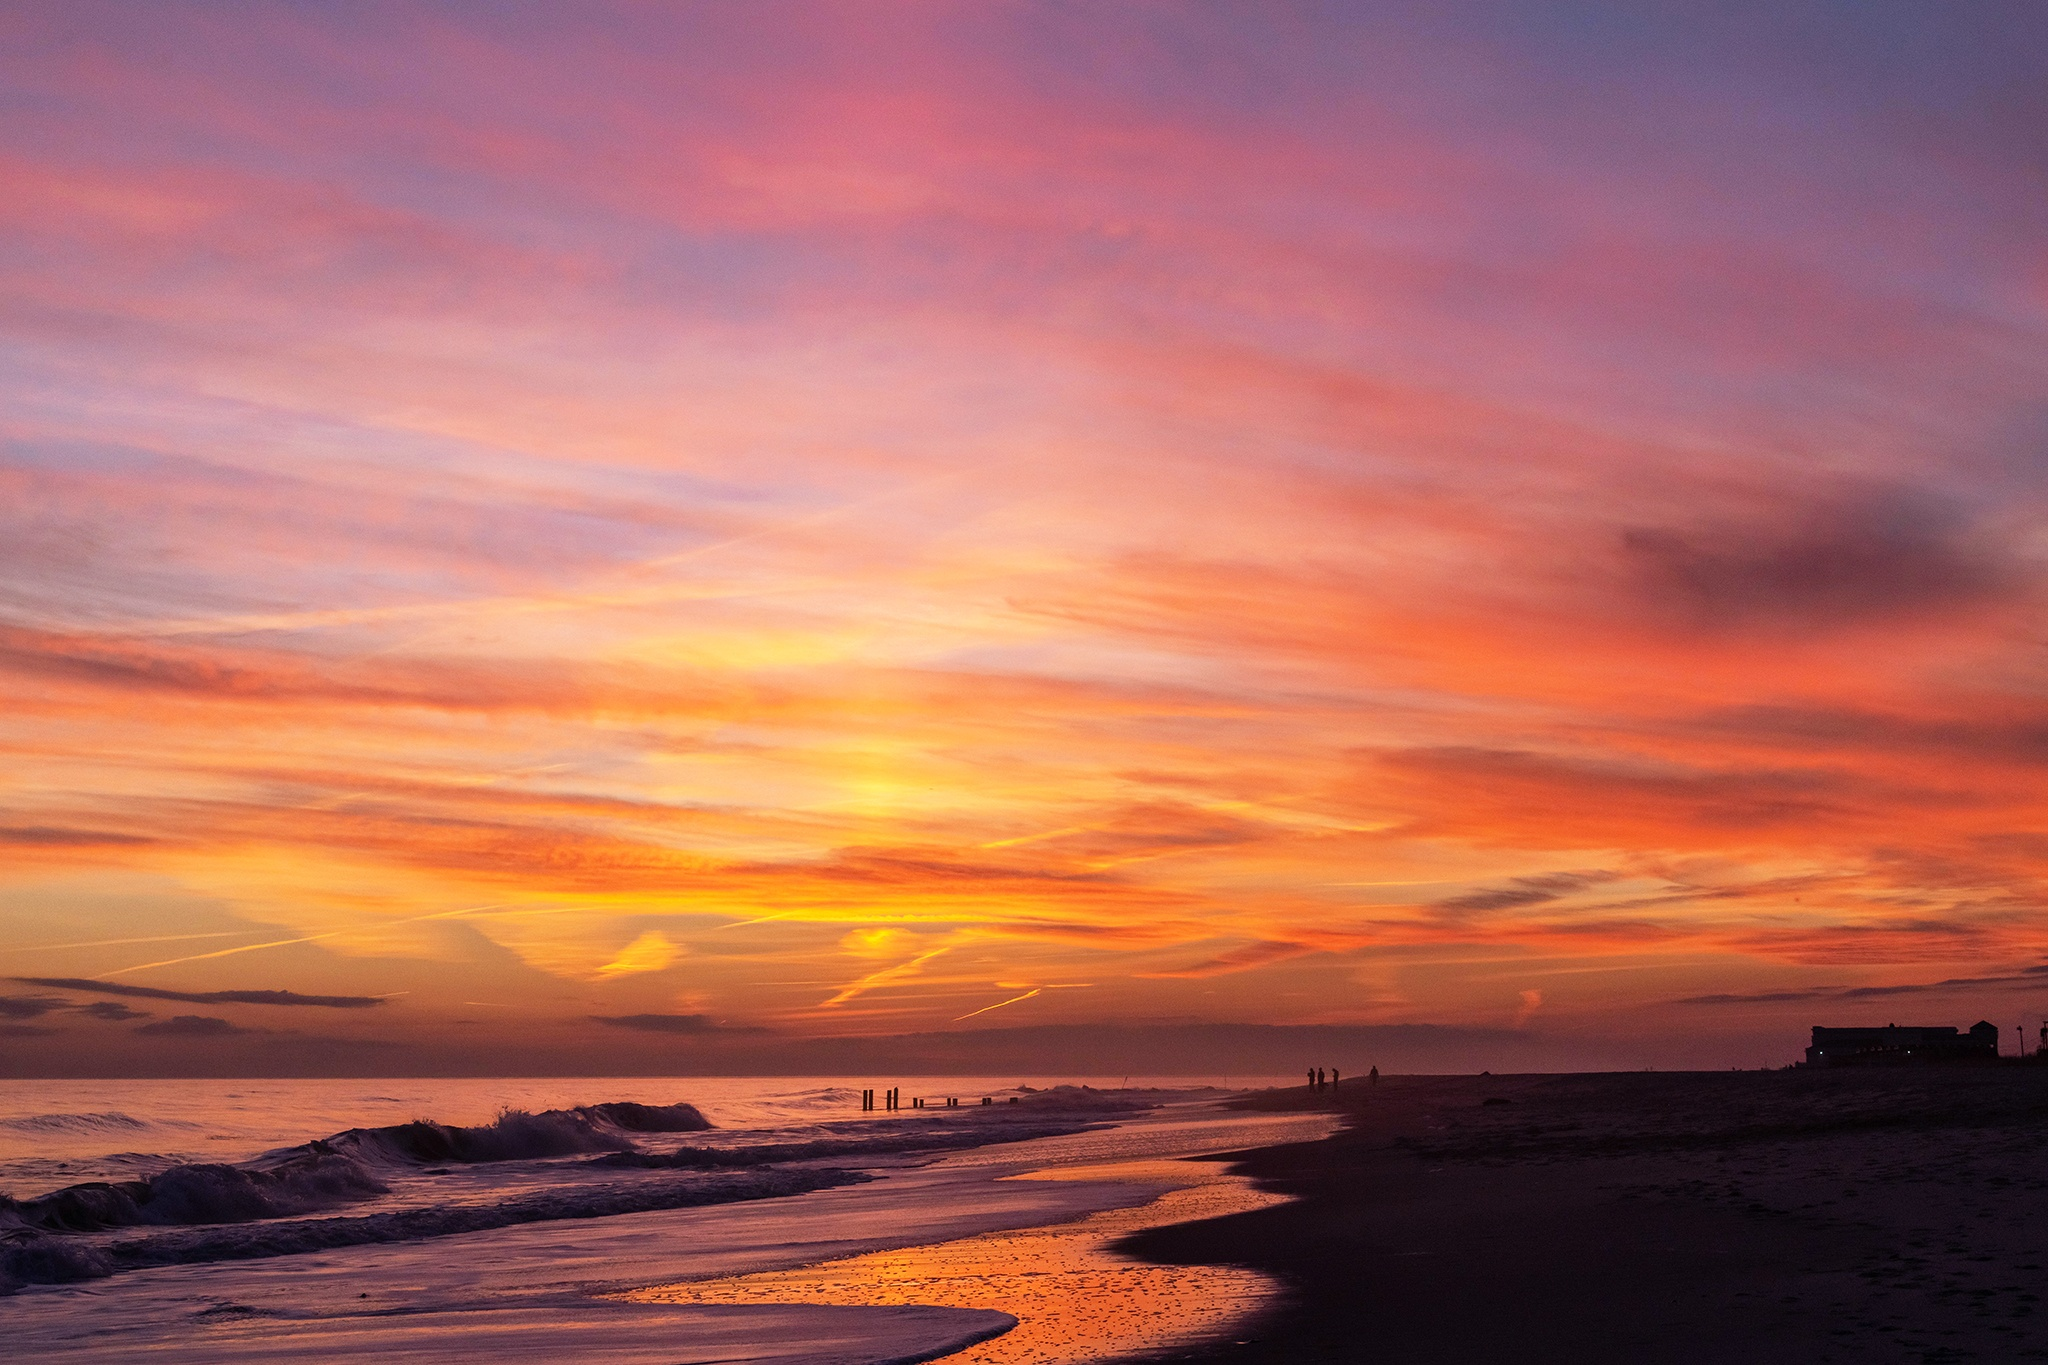 Pink, blue, orange, and yellow colors in the sky after sunset at the beach